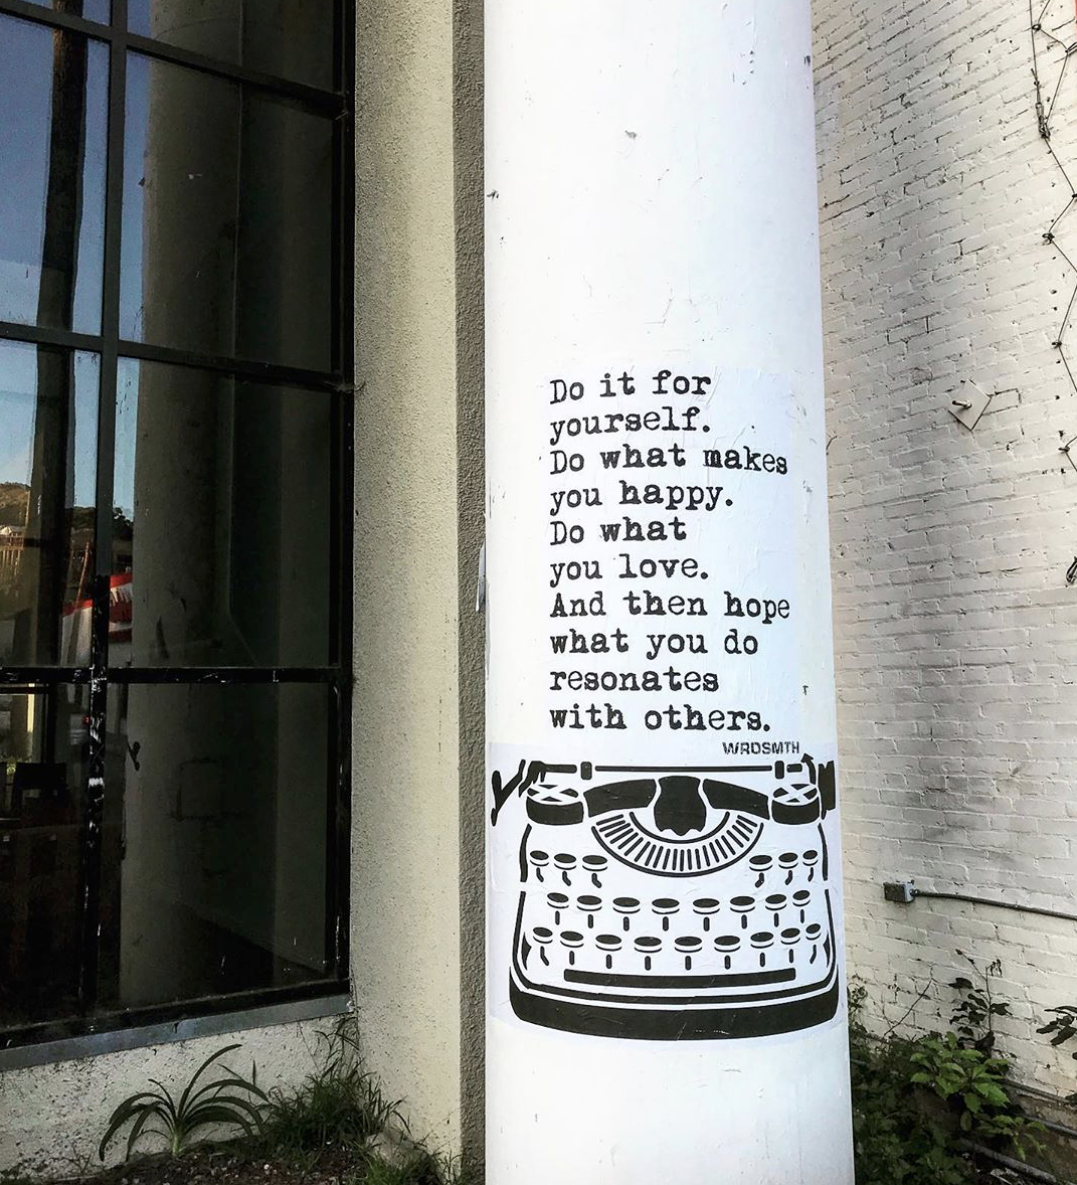 artwork: 'what you do' by wrdsmth (@wrdsmth)